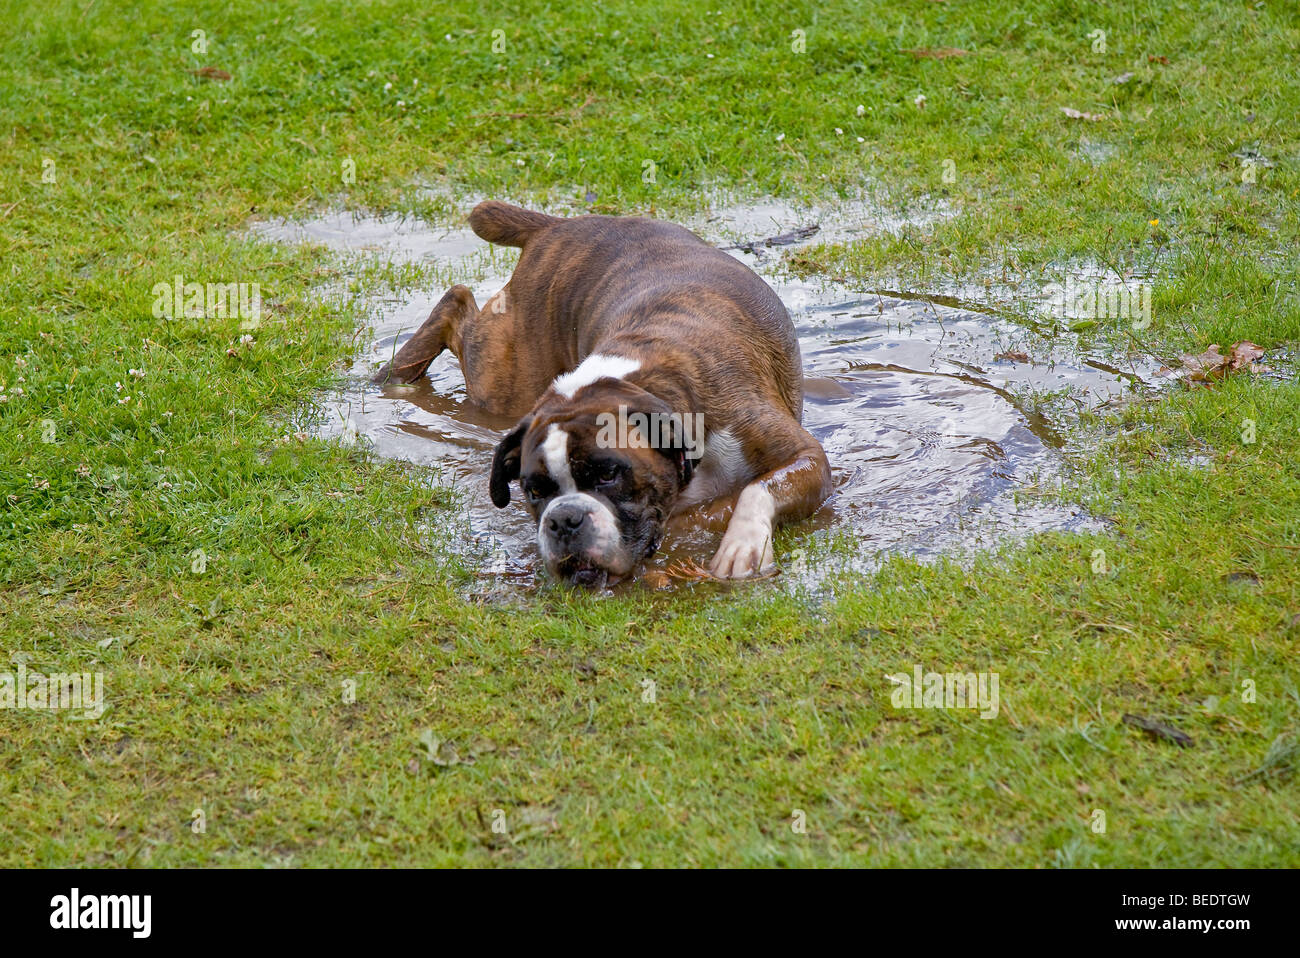 Boxer dog rolling in puddle of water in grass. UK - Stock Image